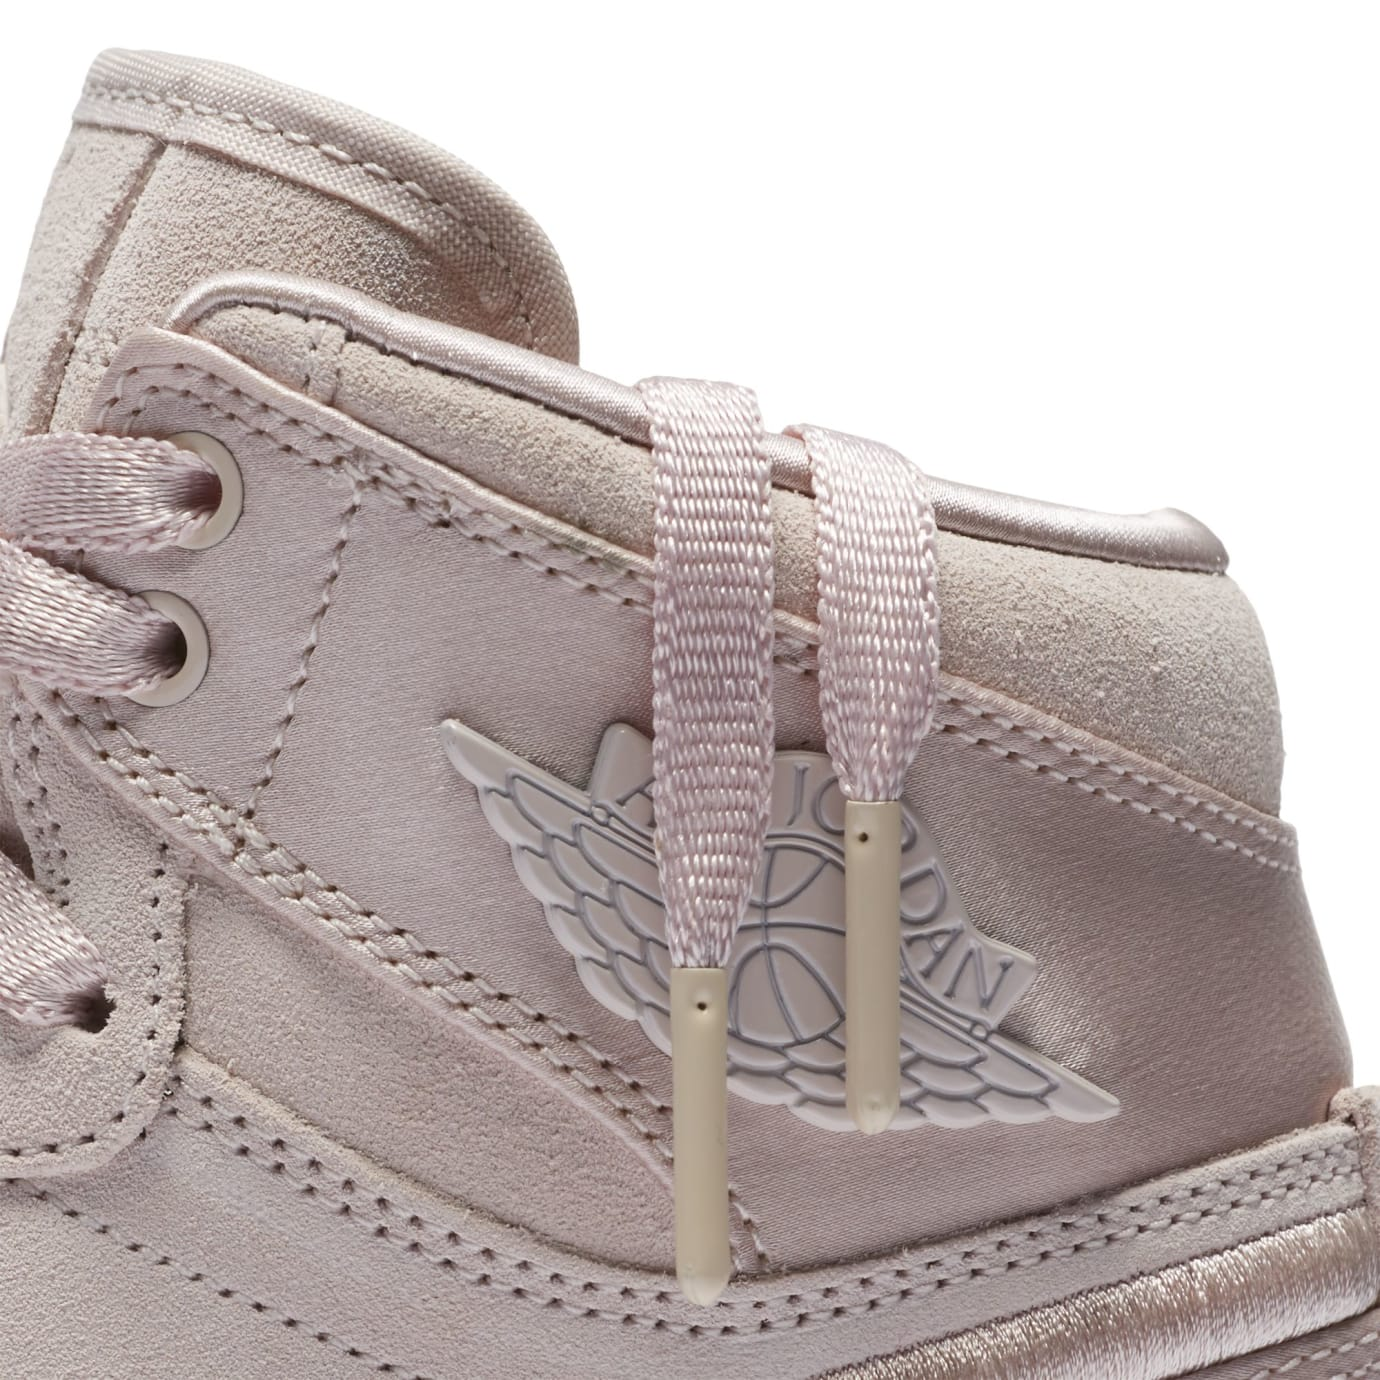 Air Jordan 1 Summer of High 'Silt Red' Silt Red/White-Metallic Gold (Detail)